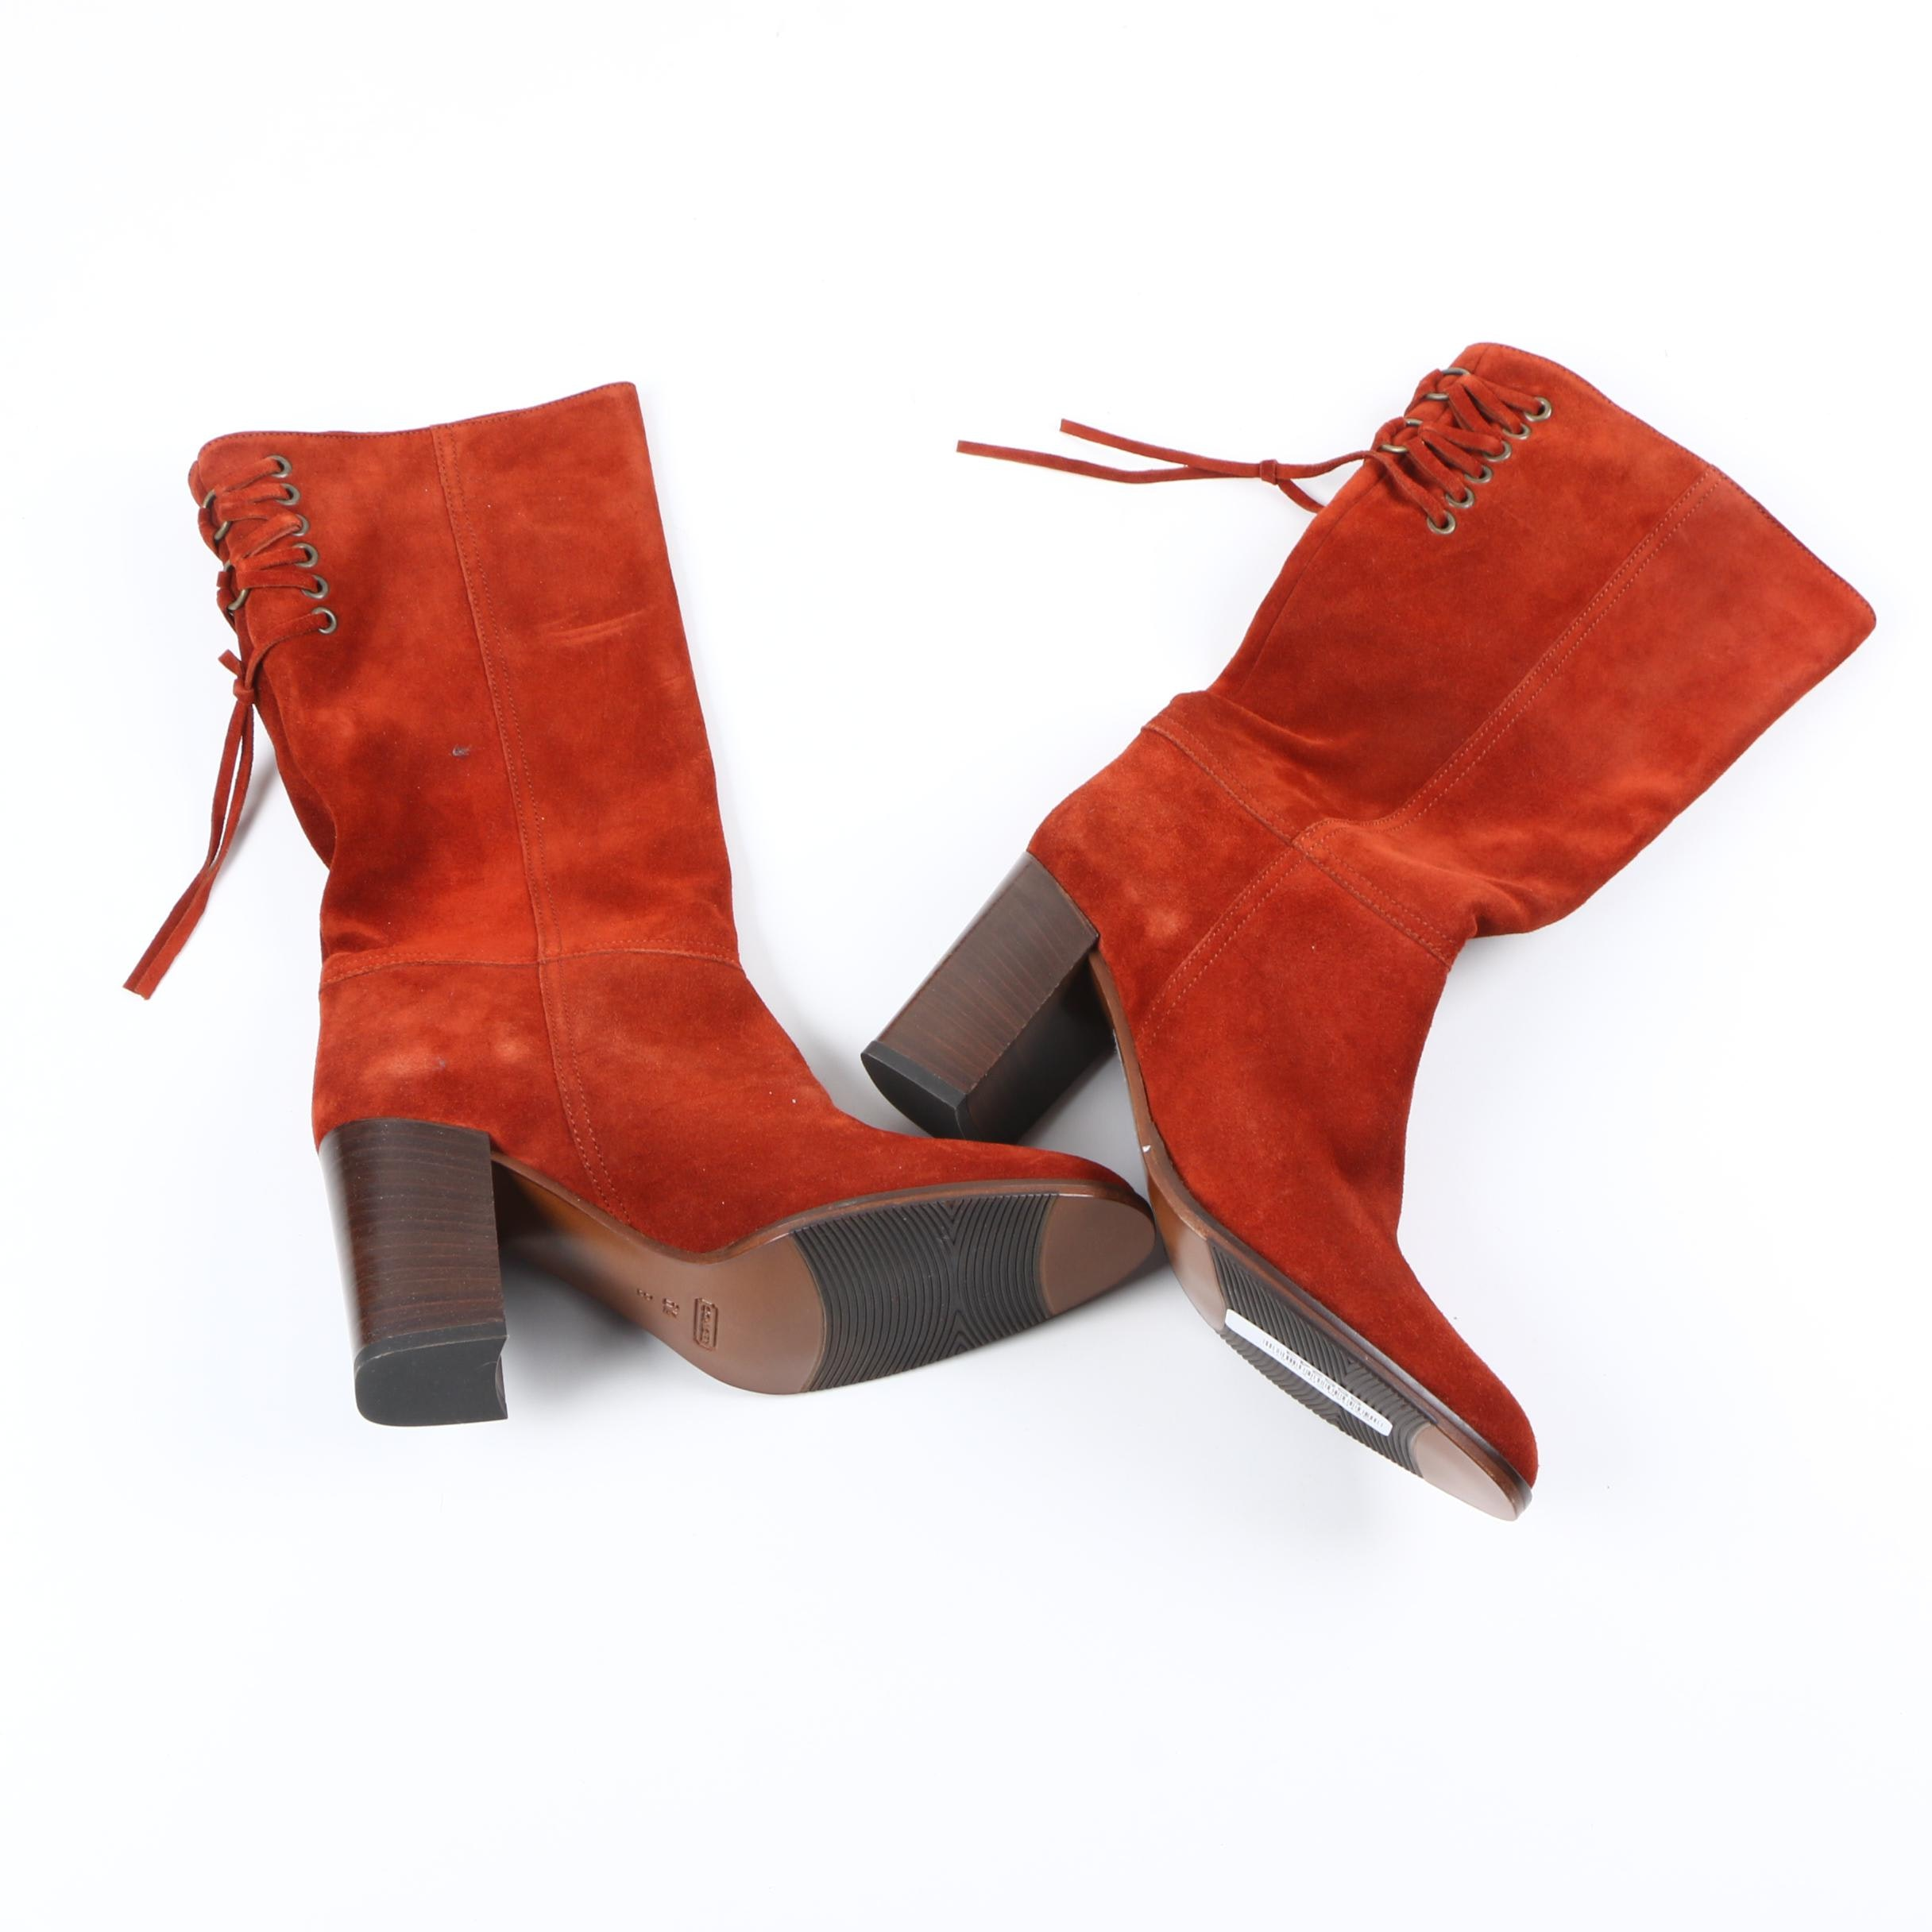 Coach Gotham City Burnt Orange Suede Boots